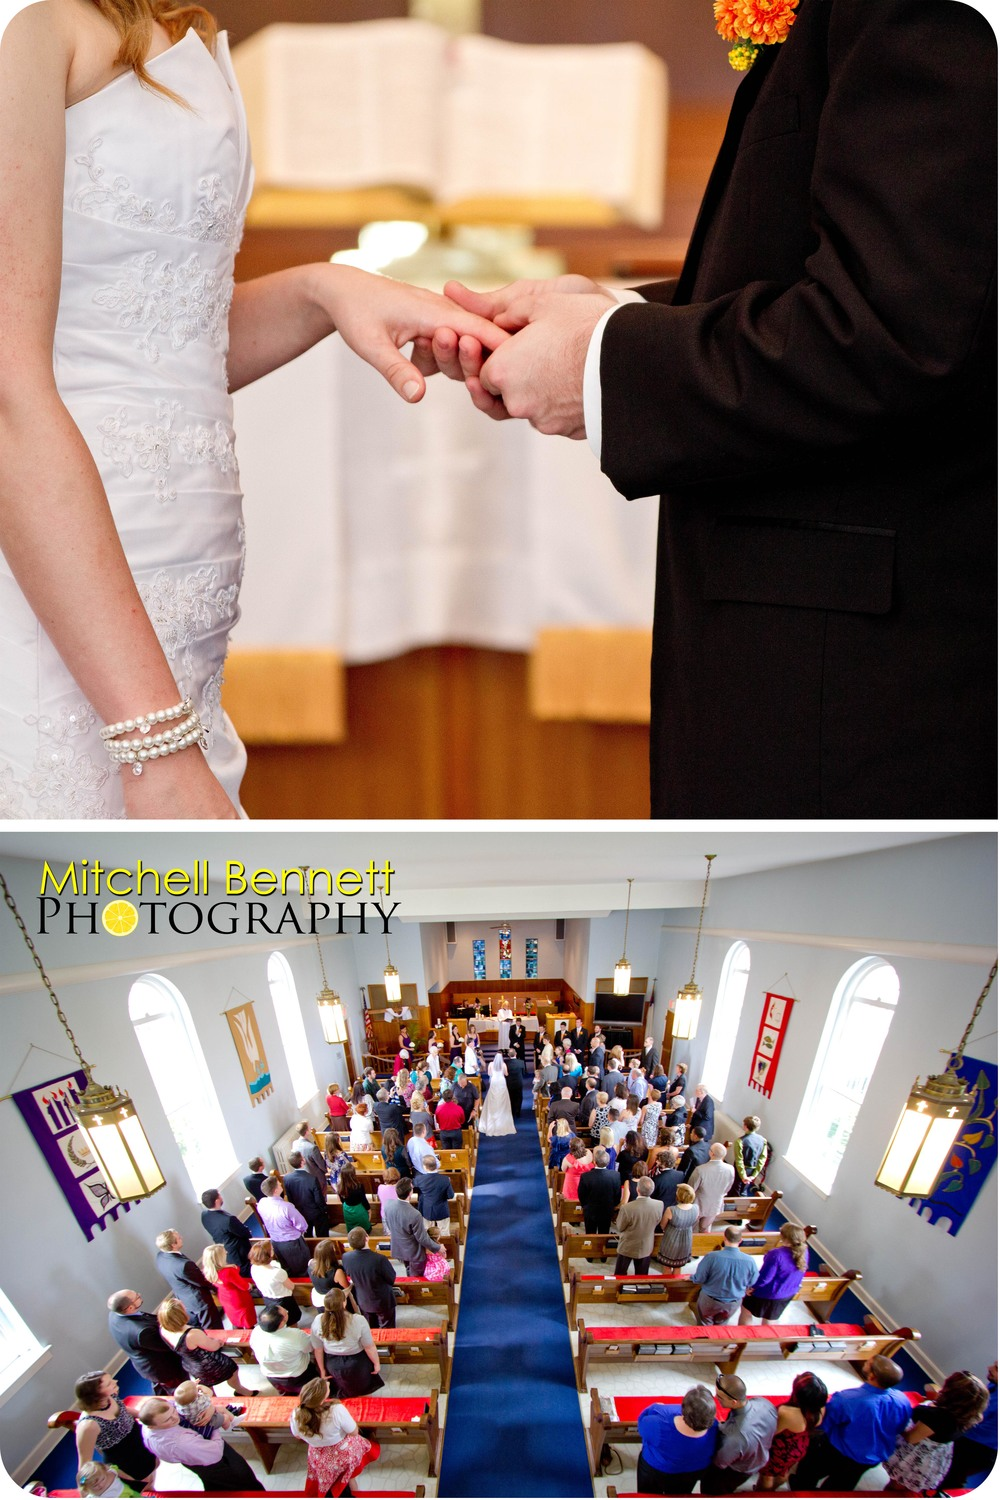 The ring exchange and a view from the balcony.